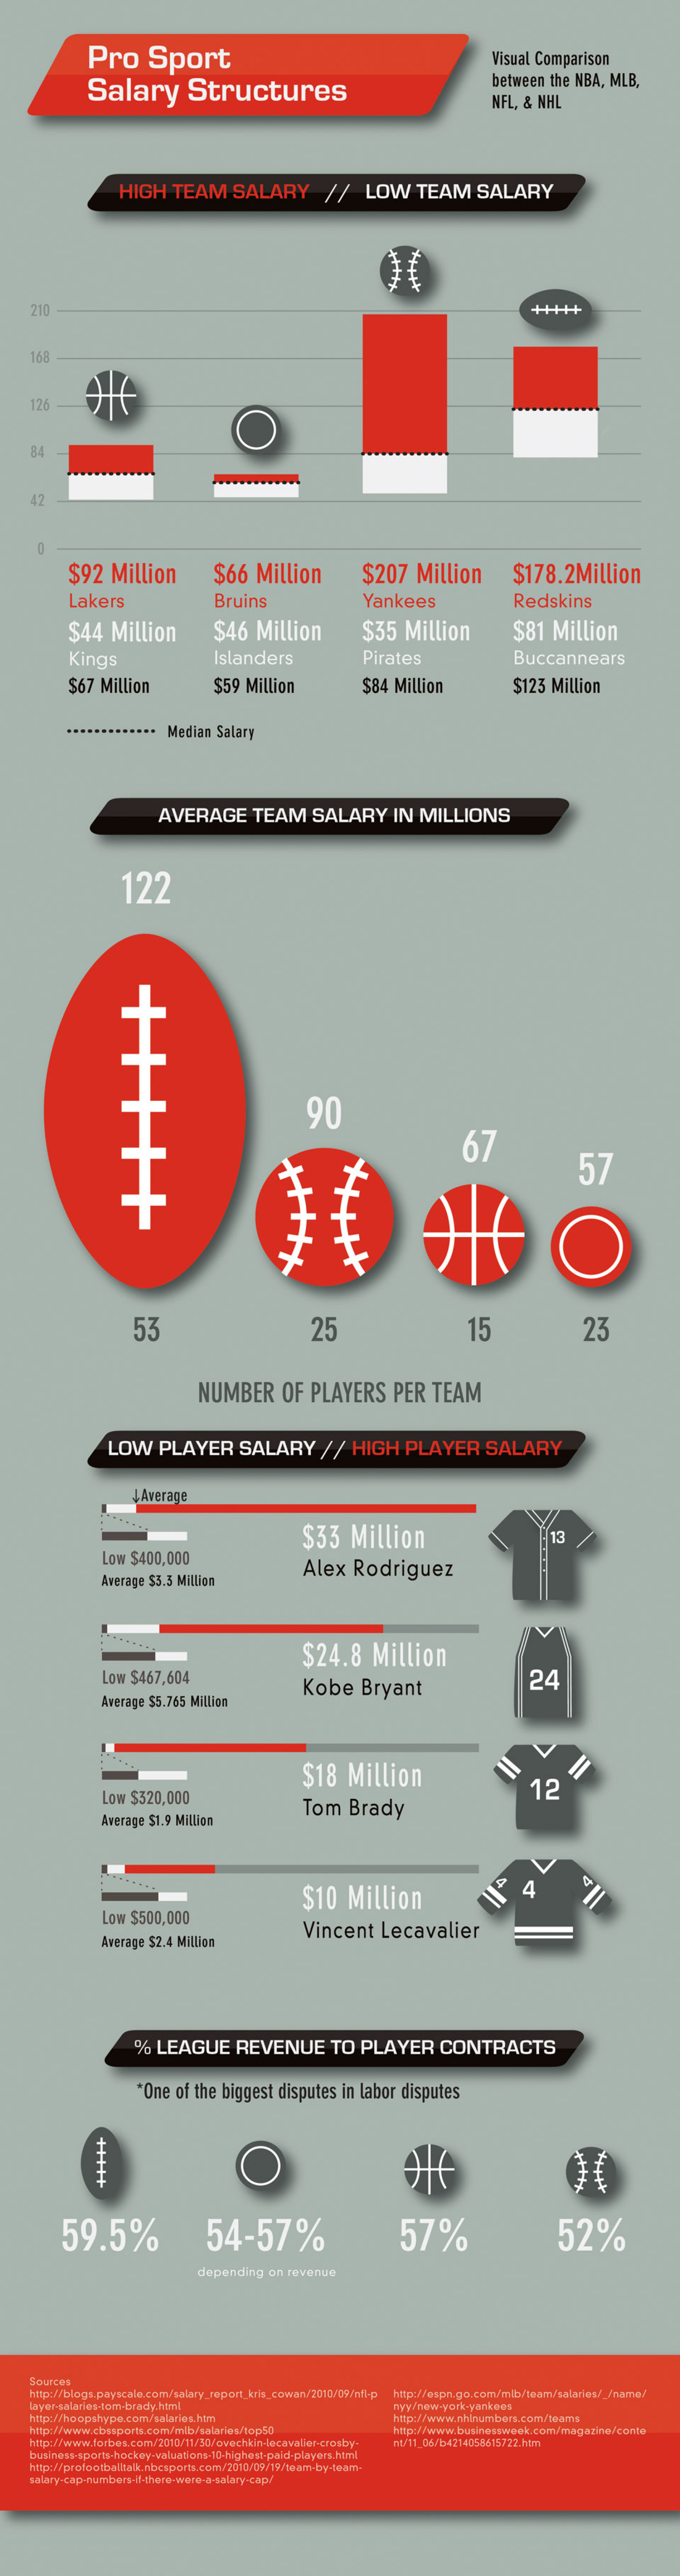 Pro Sport Salary Structures of the NFL, MLB, NBA and NHL Infographic